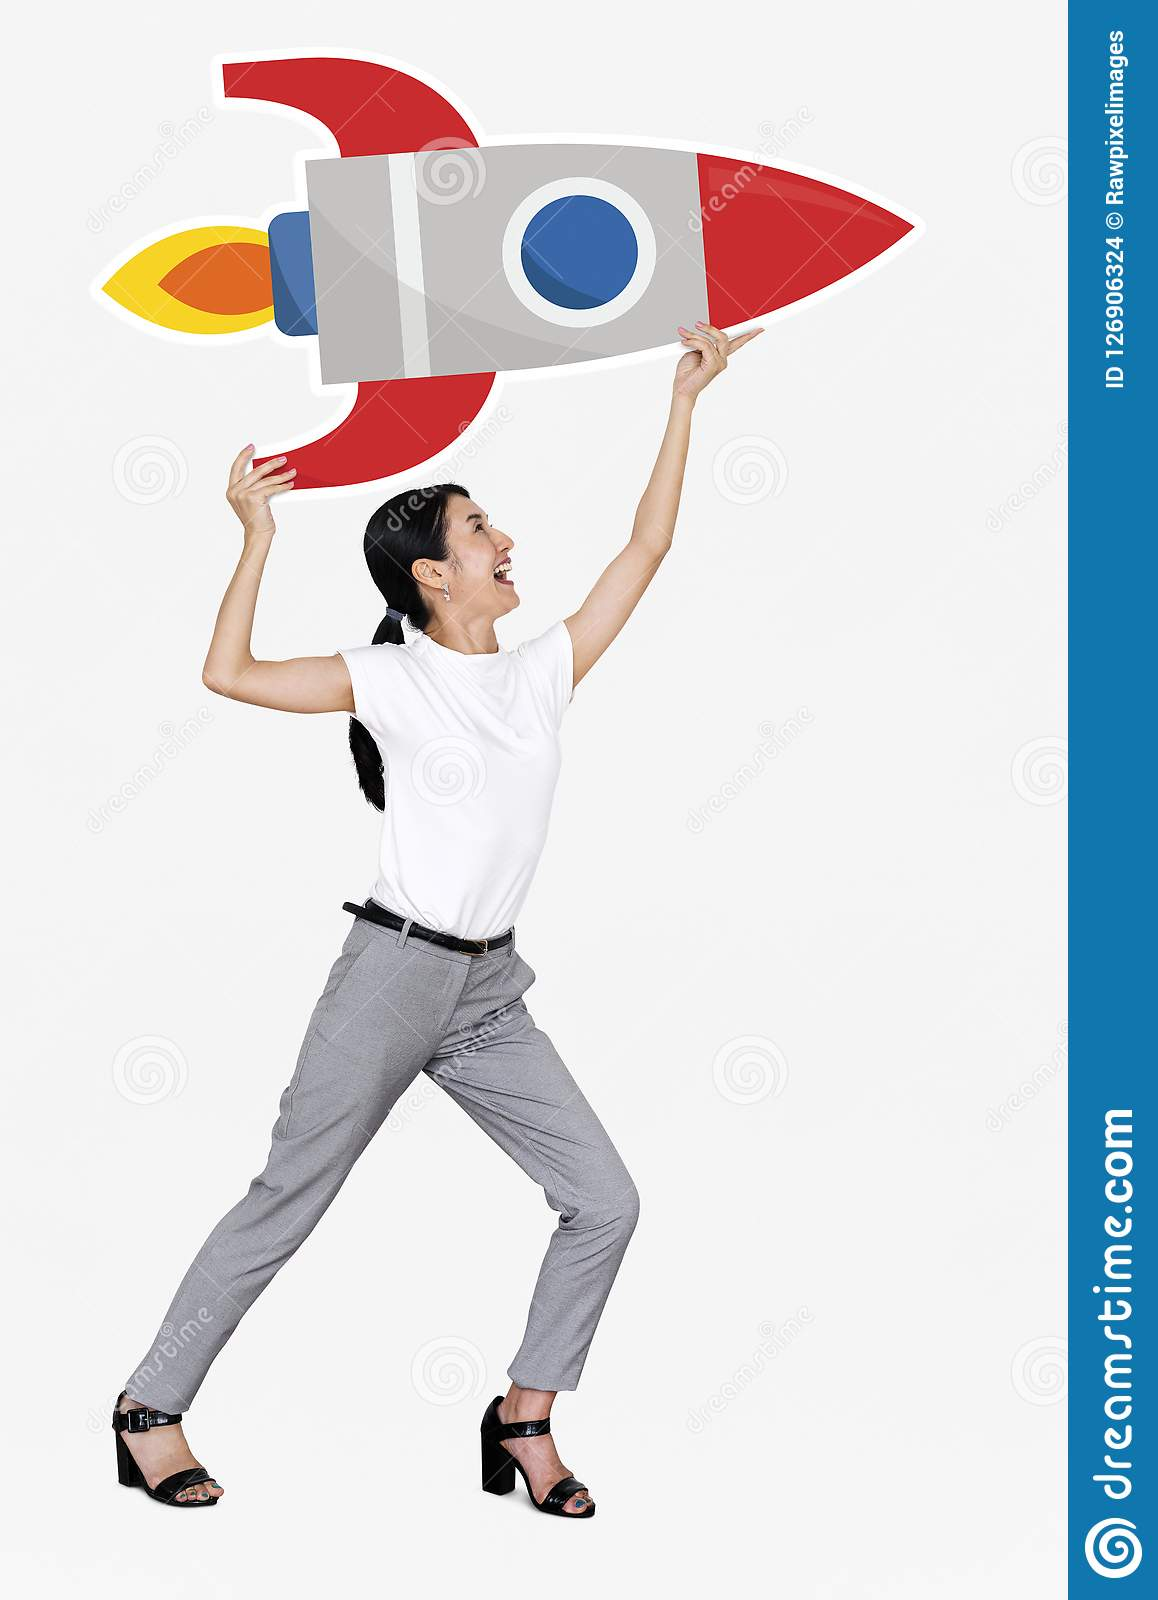 Creative woman with a launching rocket symbol